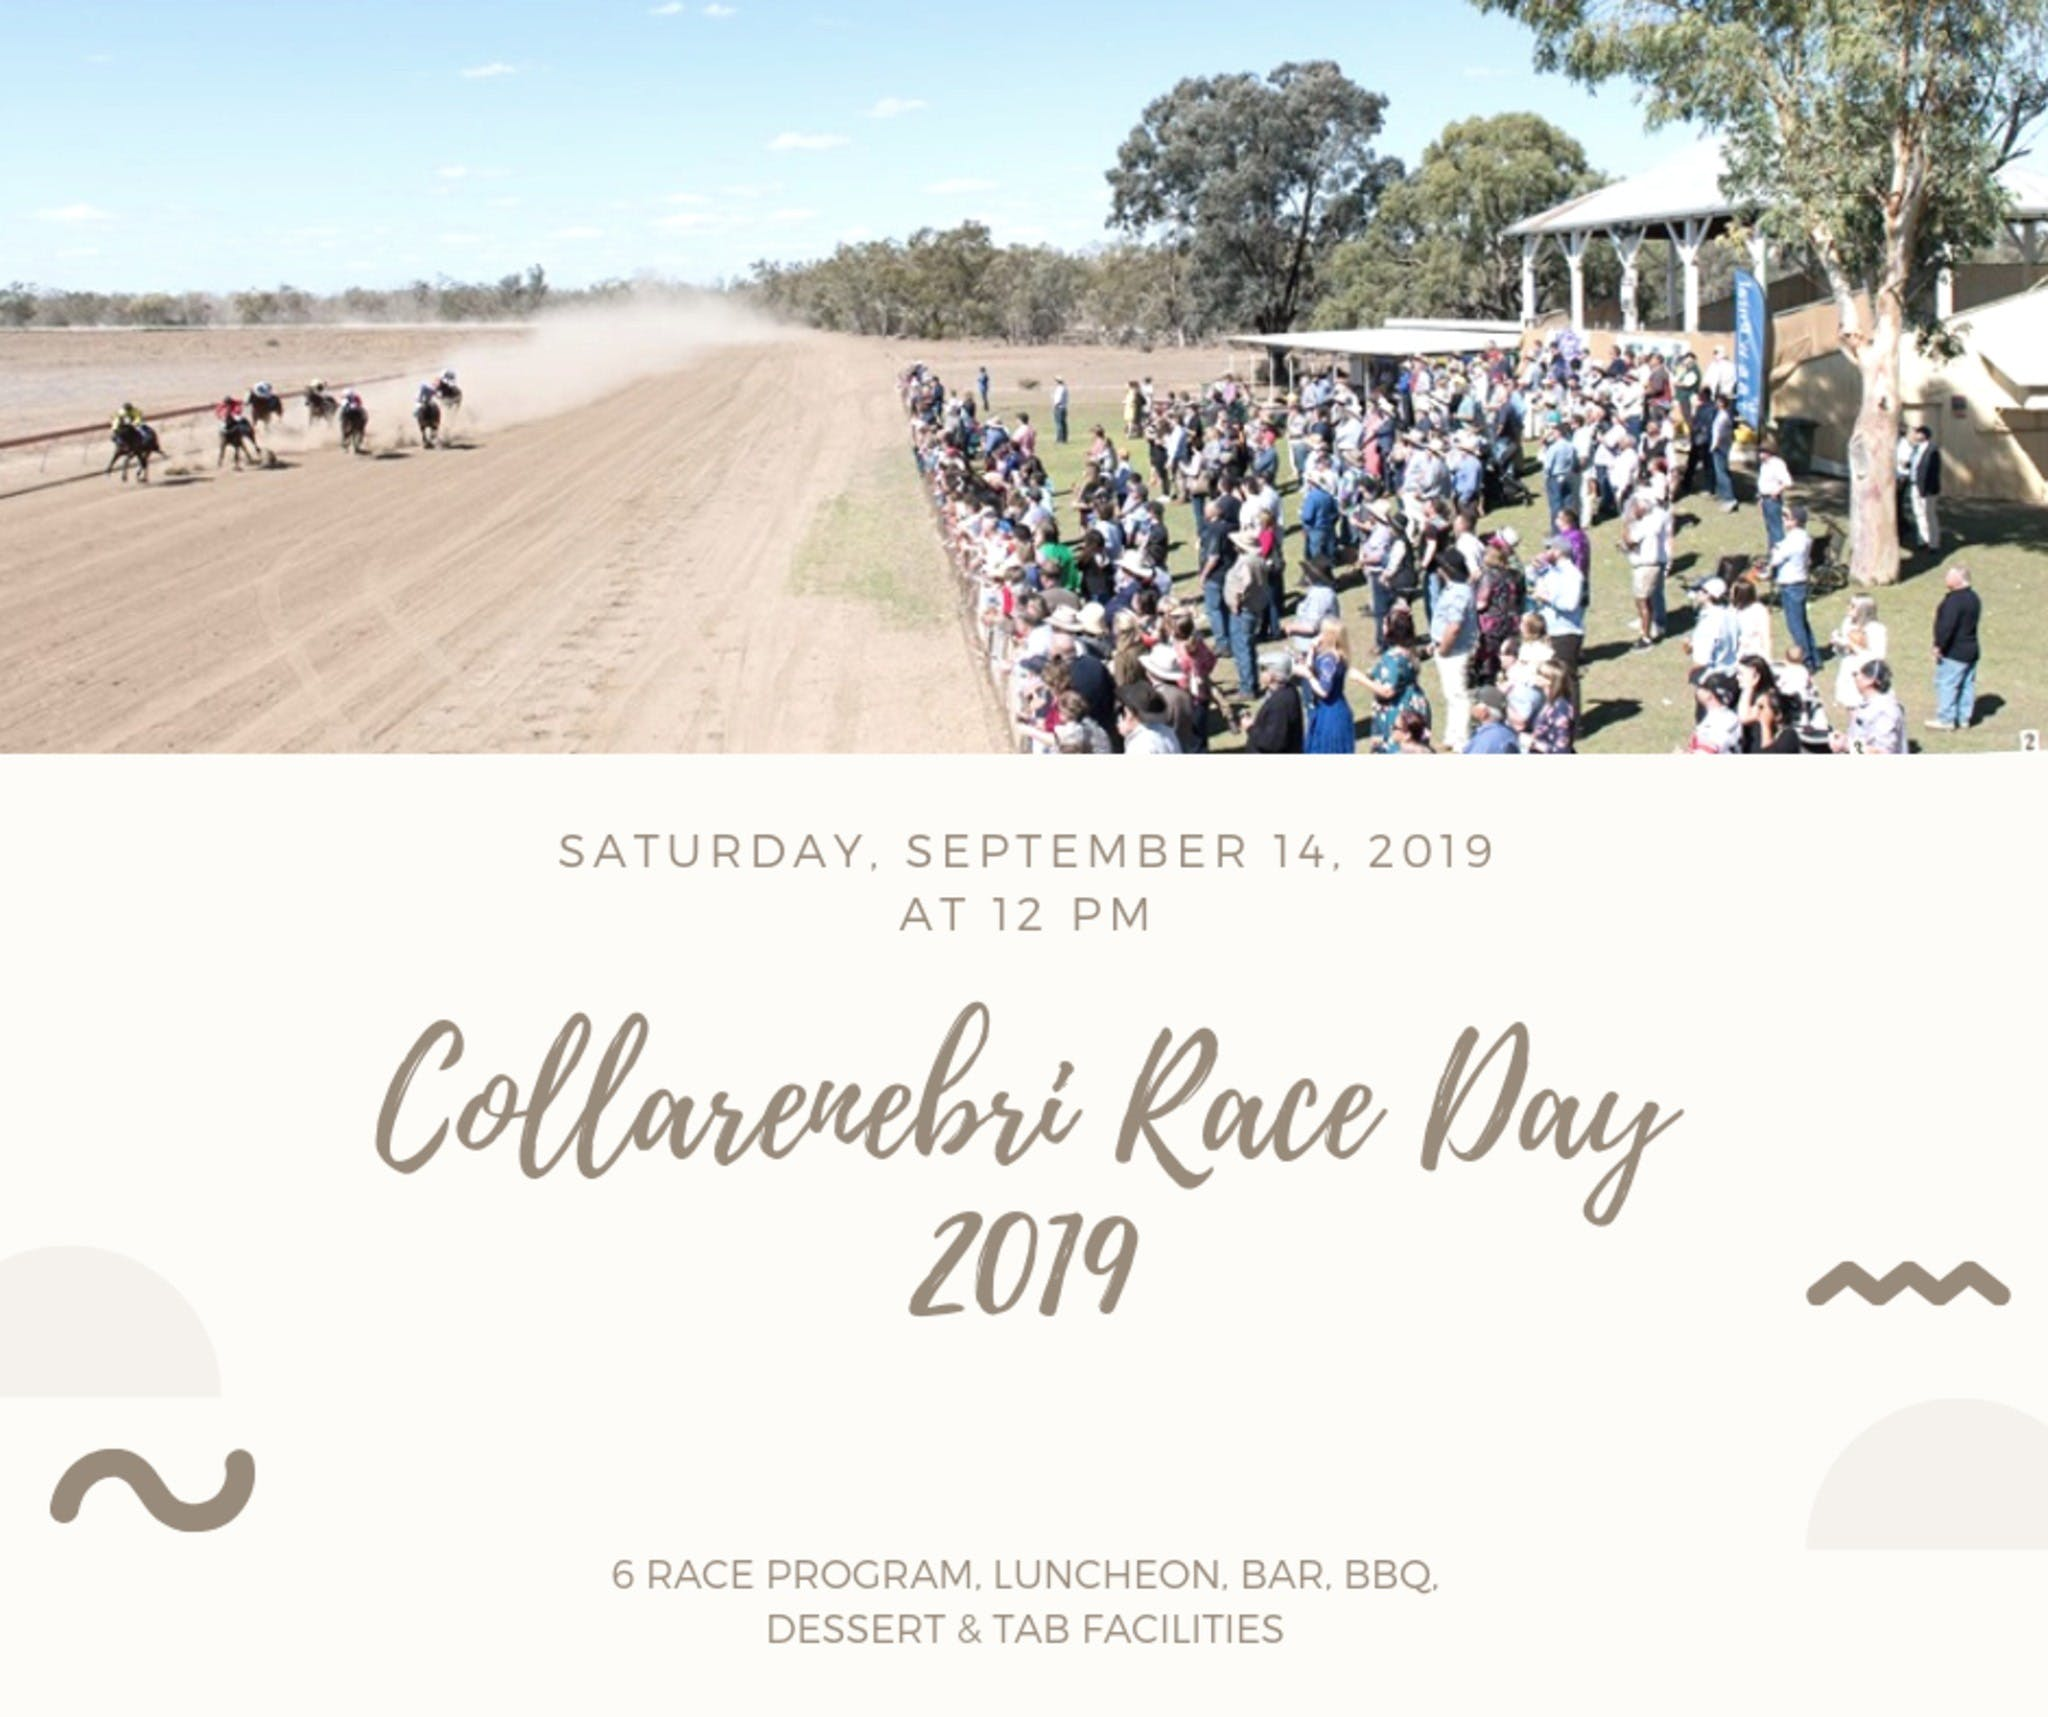 Collarenebri Races - Tourism Cairns